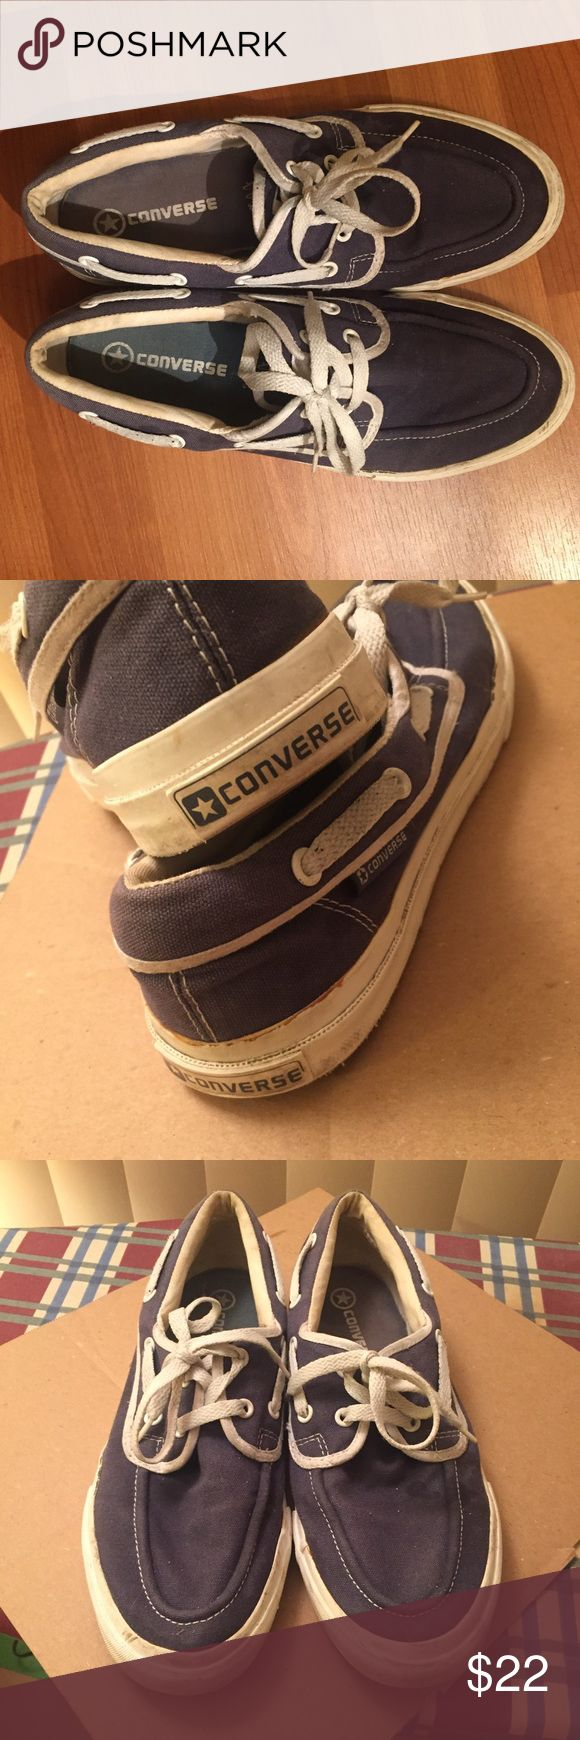 Men's Converse Boat Shoes Men's Converse Boat Shoes. Shoe is a little worn, but great for its worth! Size: 9.5 Converse Shoes Boat Shoes